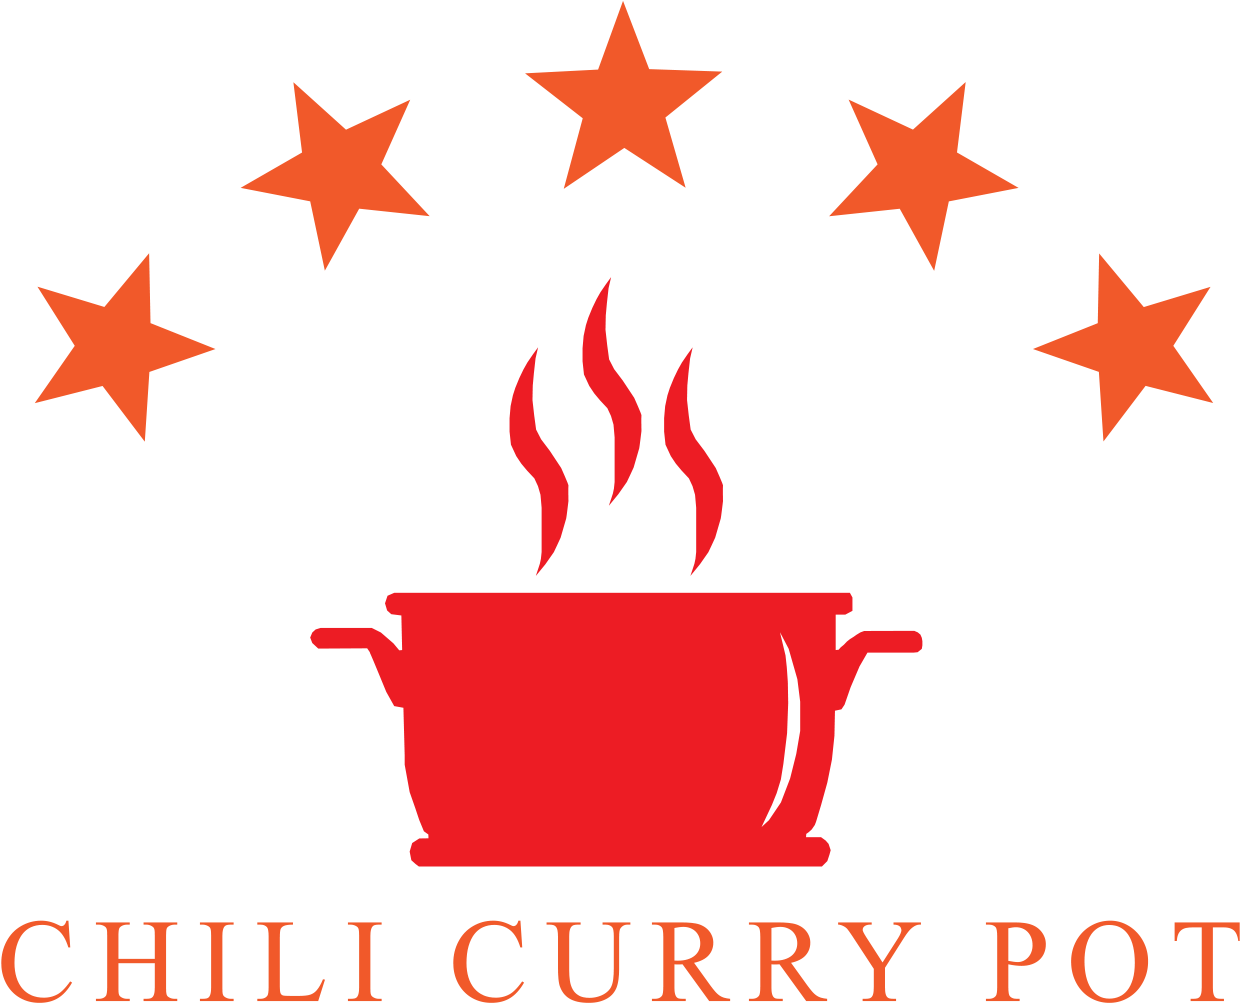 HD Chili Curry Pot Clipart , Png Download.